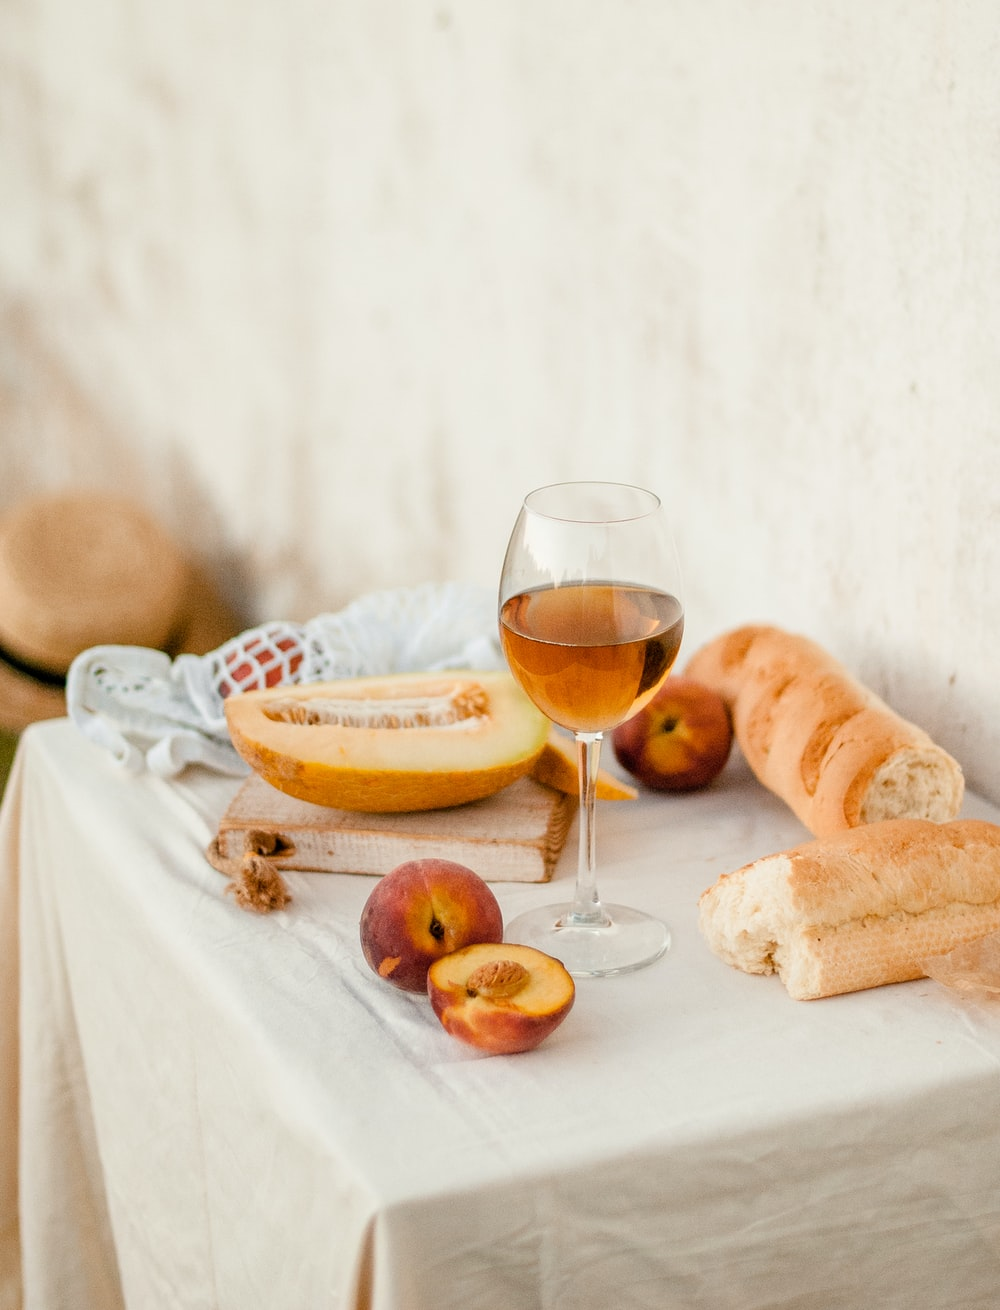 bread and wine glass on table